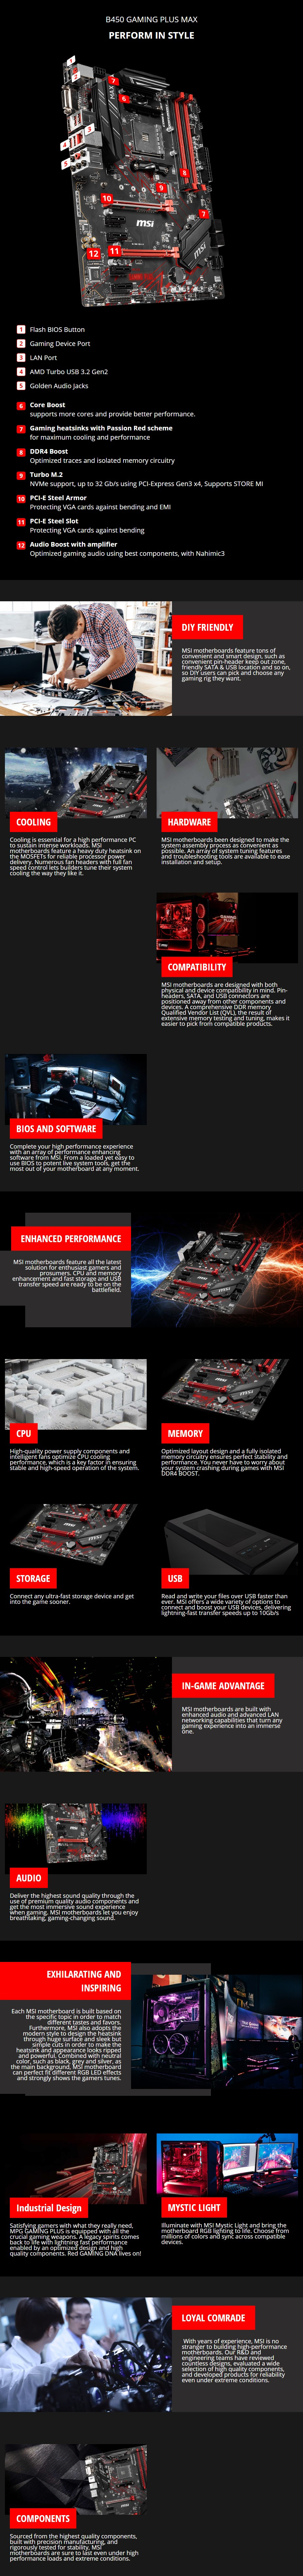 MSI B450 GAMING PLUS MAX AM4 ATX Motherboard - Overview 1